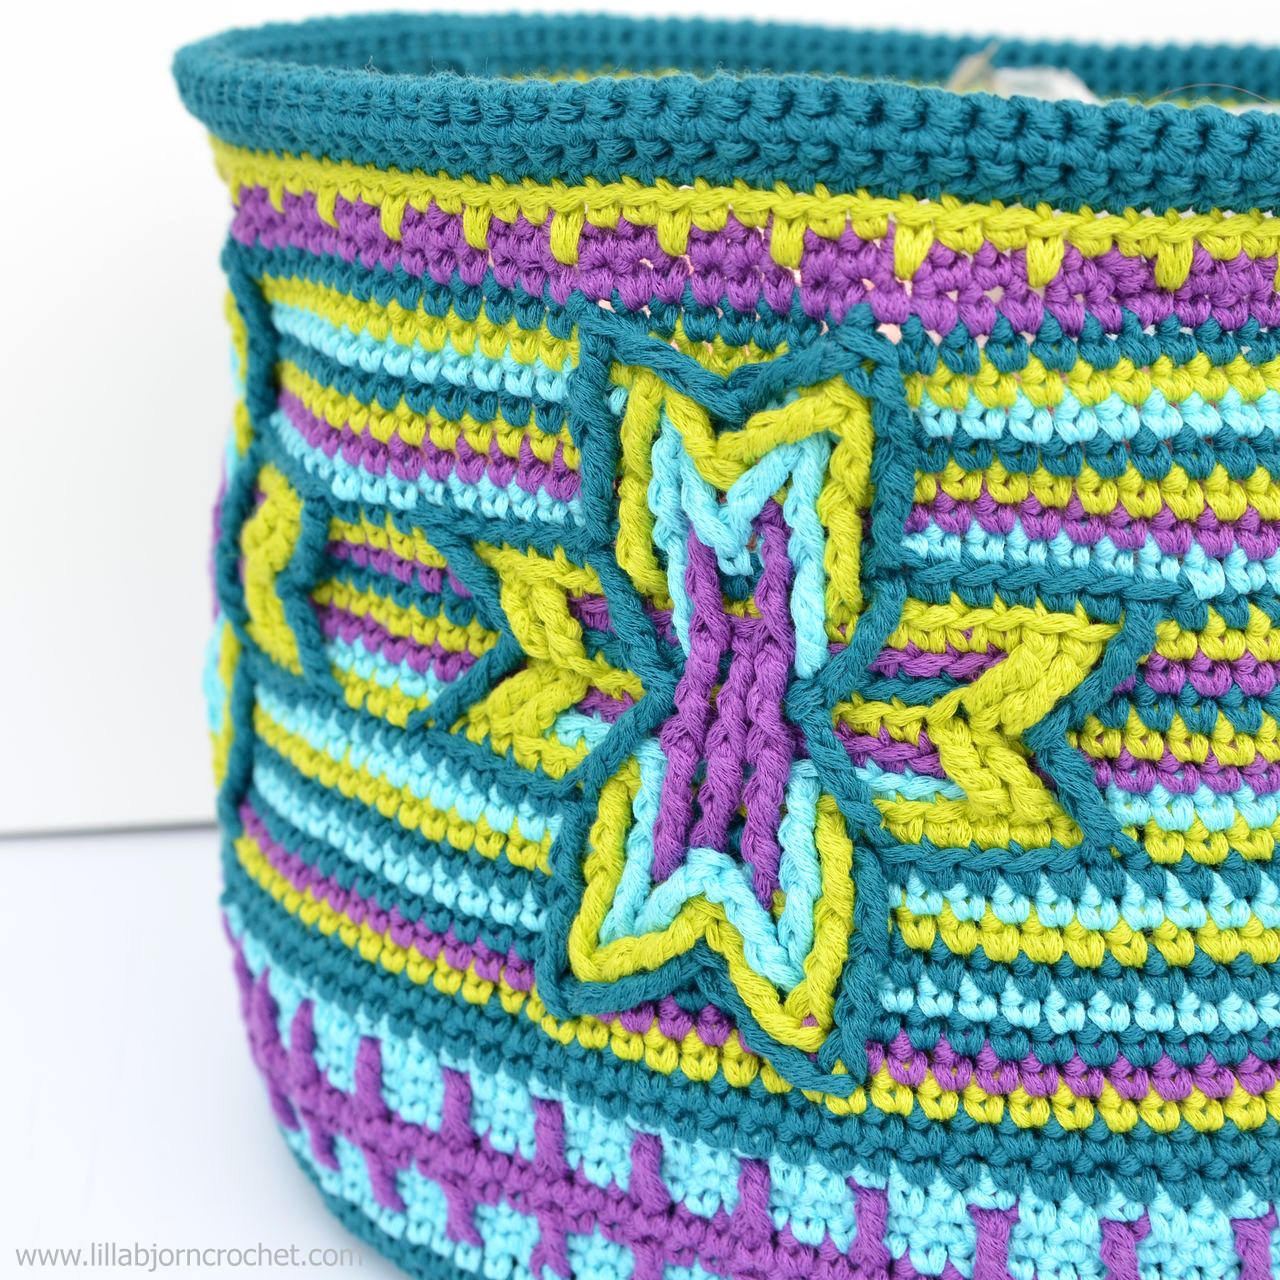 Indian Star Basket overlay crochet pattern can be also used to make a pillow throw or a small pouch. Original design by www.lillabjorncrochet.com